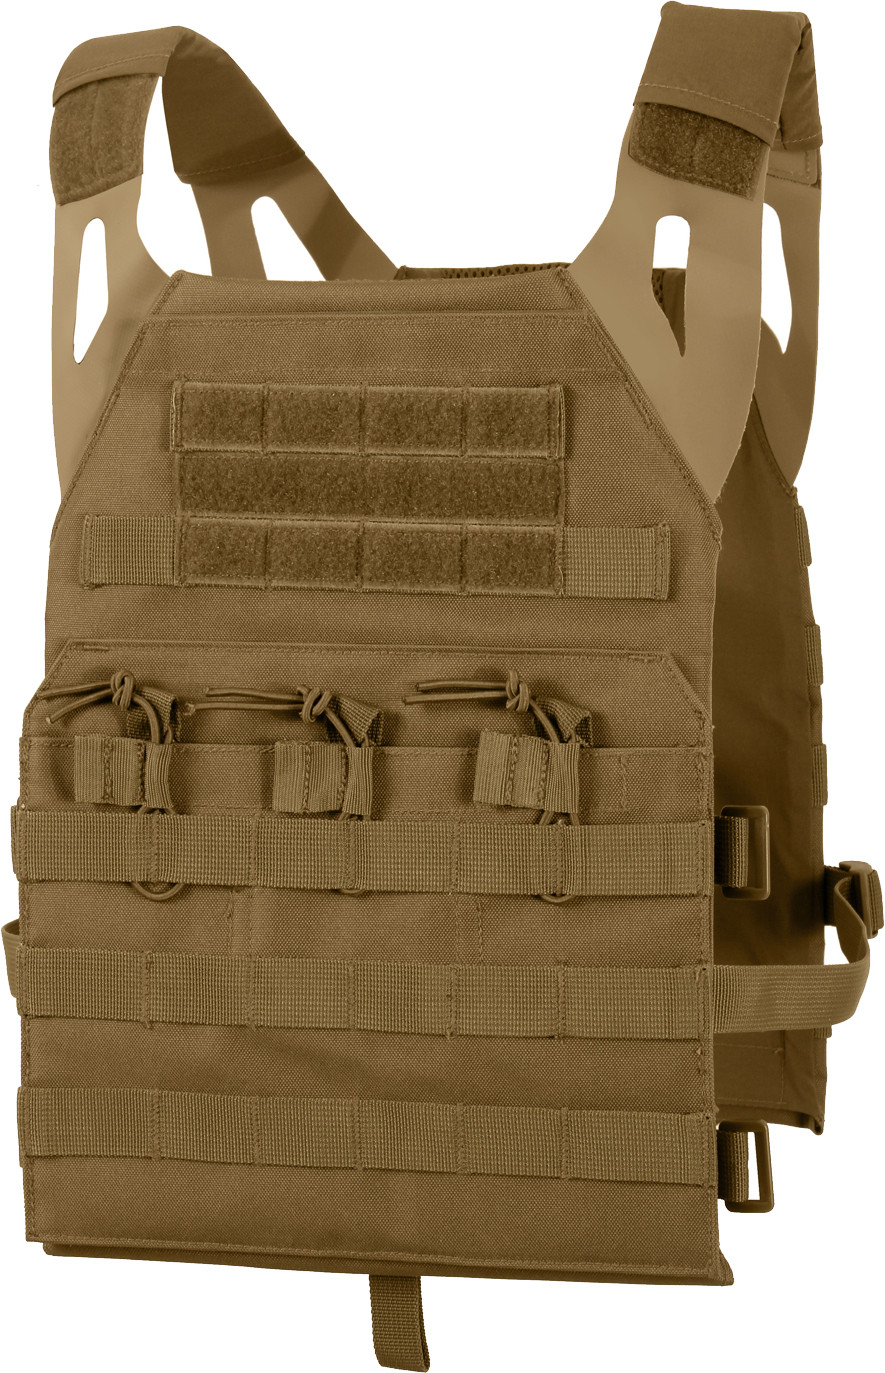 Coyote Brown Lightweight MOLLE Compatible 3 Magazine Pouch Plate Carrier  Vest 68e42023ab5